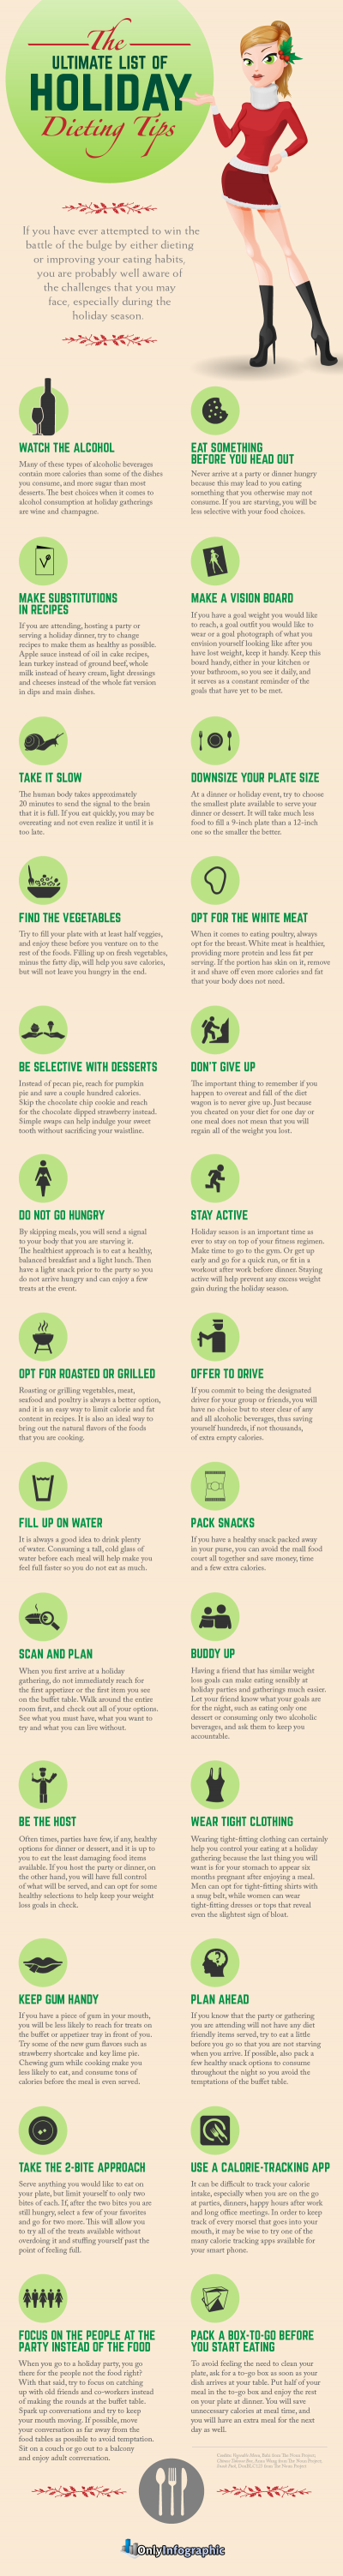 26 Holiday Dieting Tips That Will Keep You Food Coma Free [Infographic]